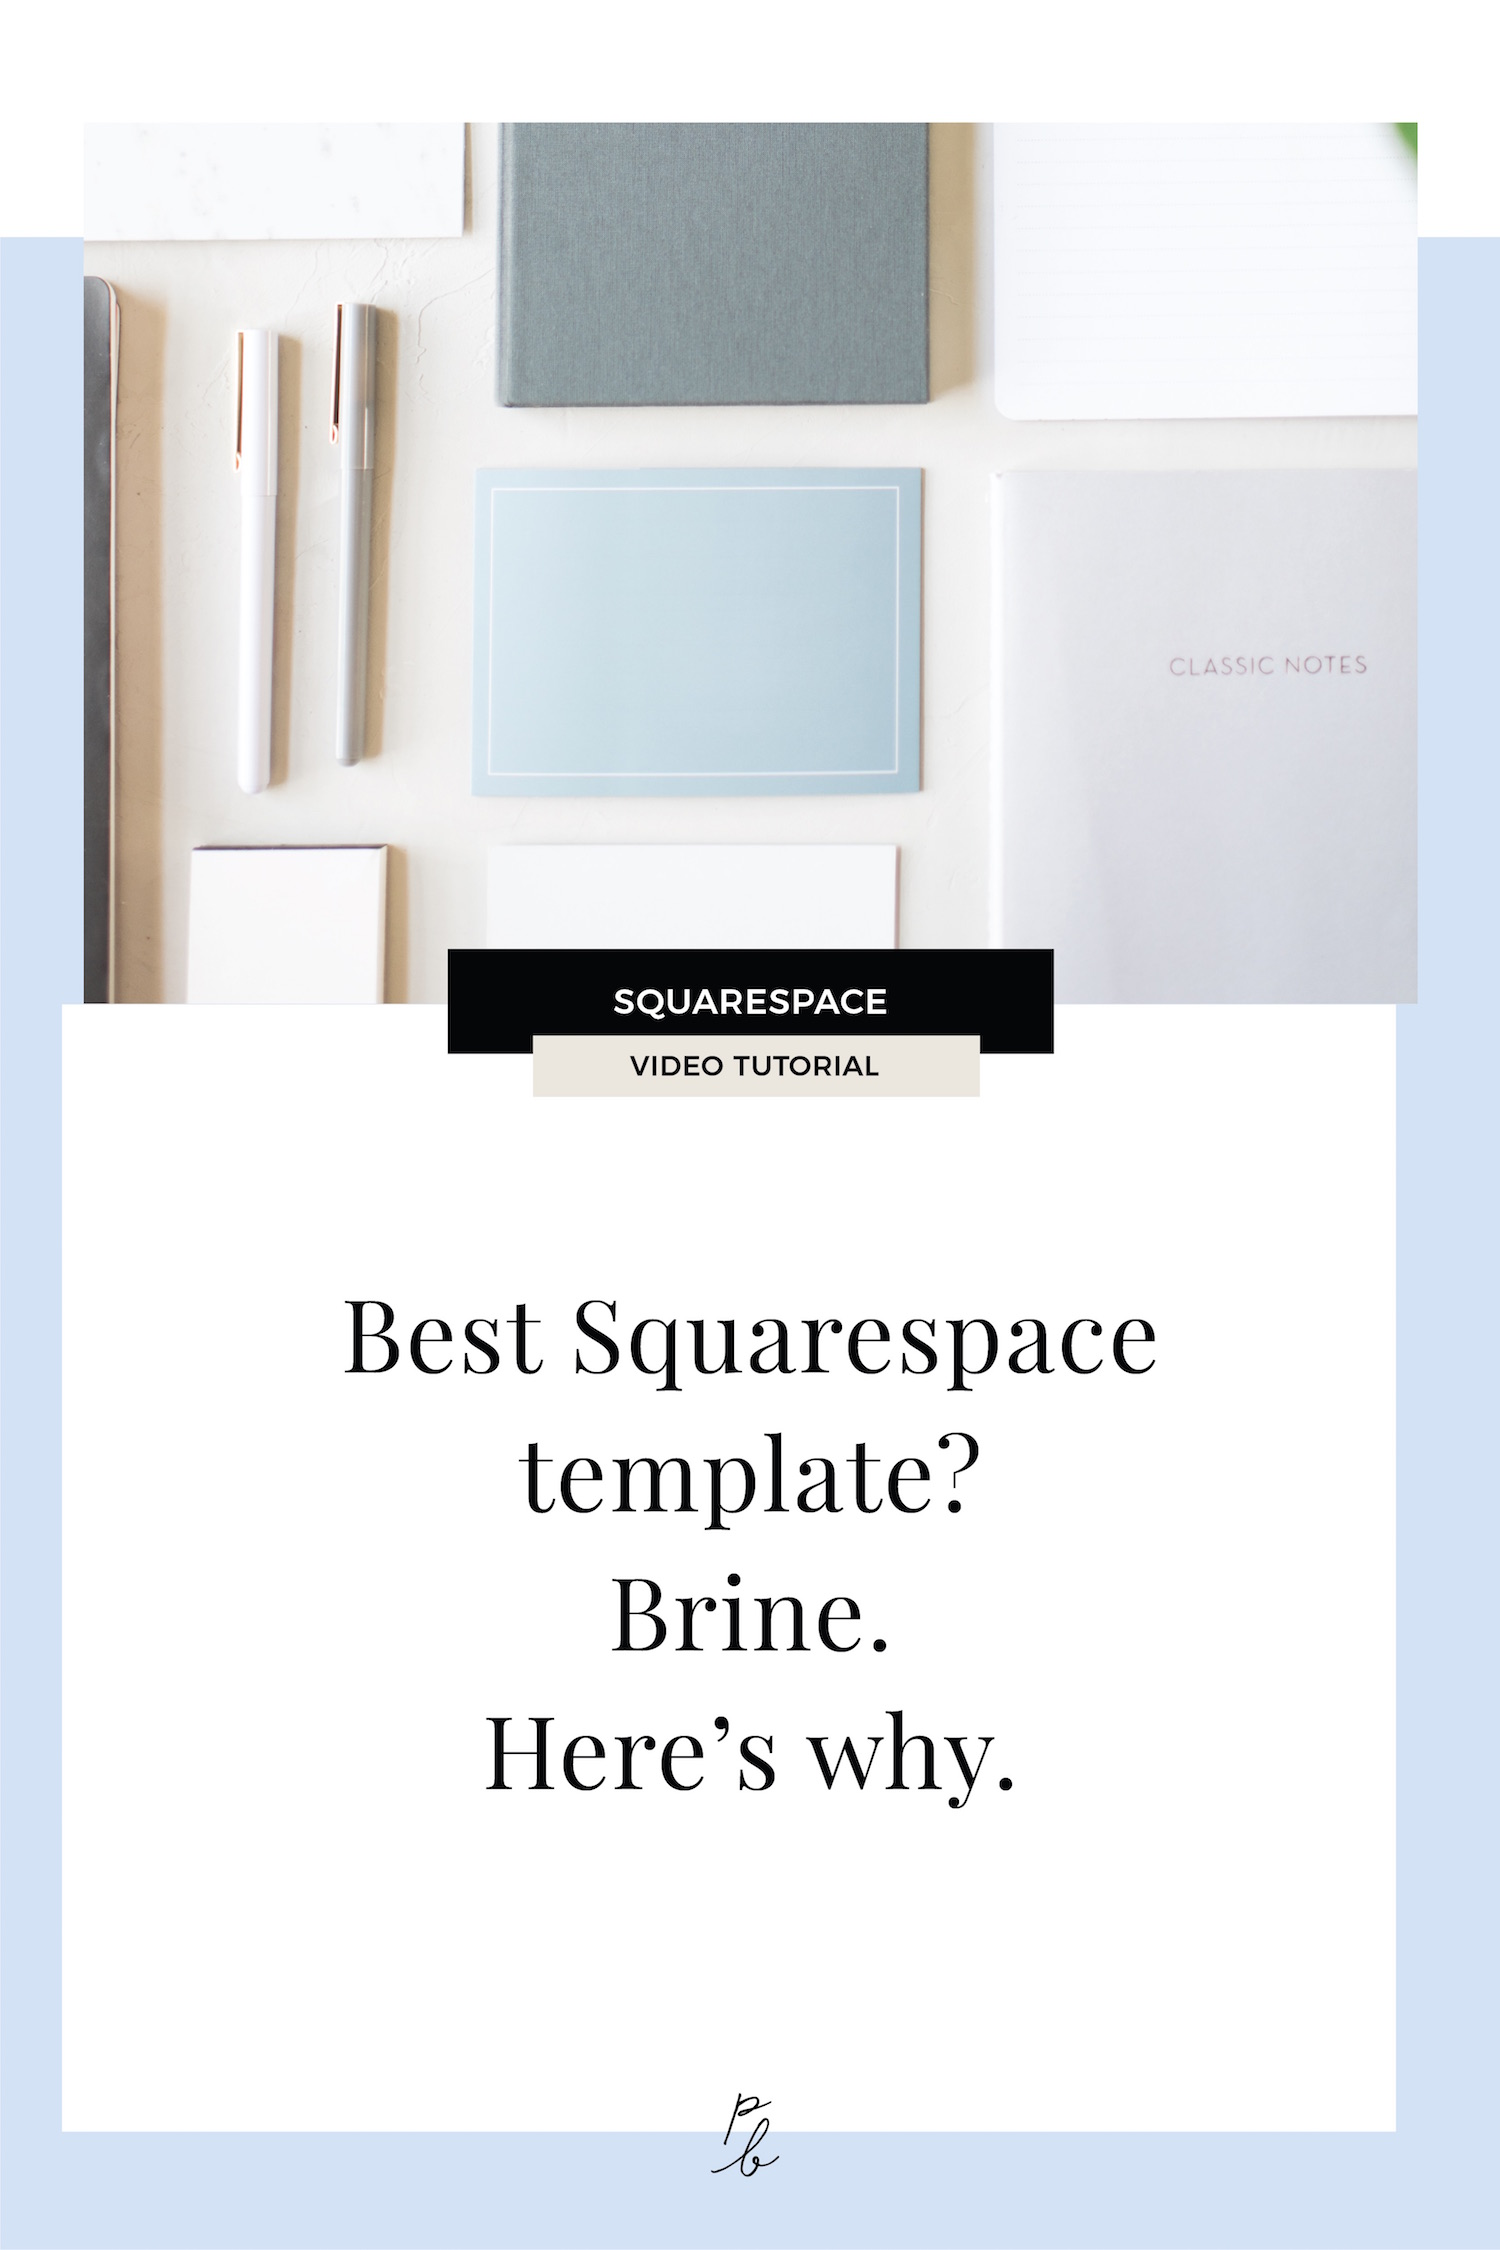 4e50a16003f0 What is the best Squarespace template? Brine. Here's why. — Paige Brunton |  Squarespace Expert + Website Designer